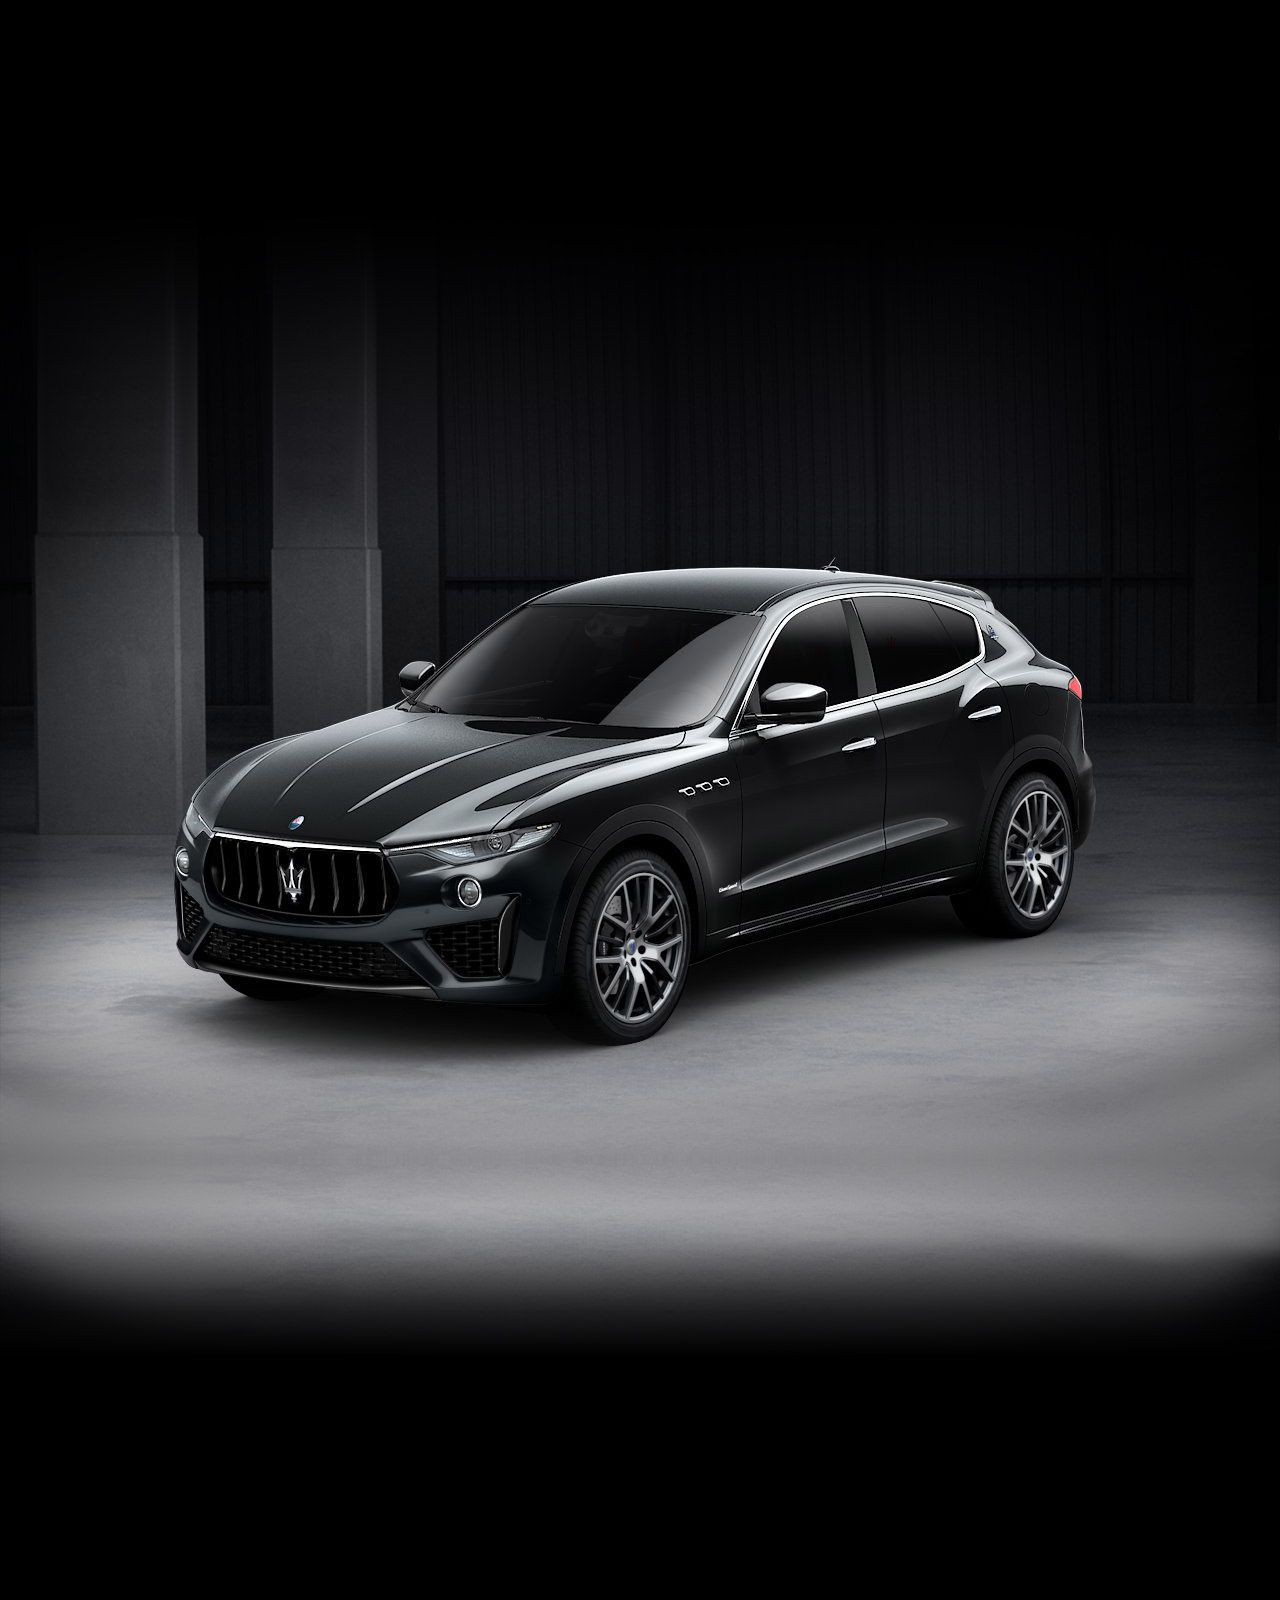 Maserati Levante GranSport exterior – front view